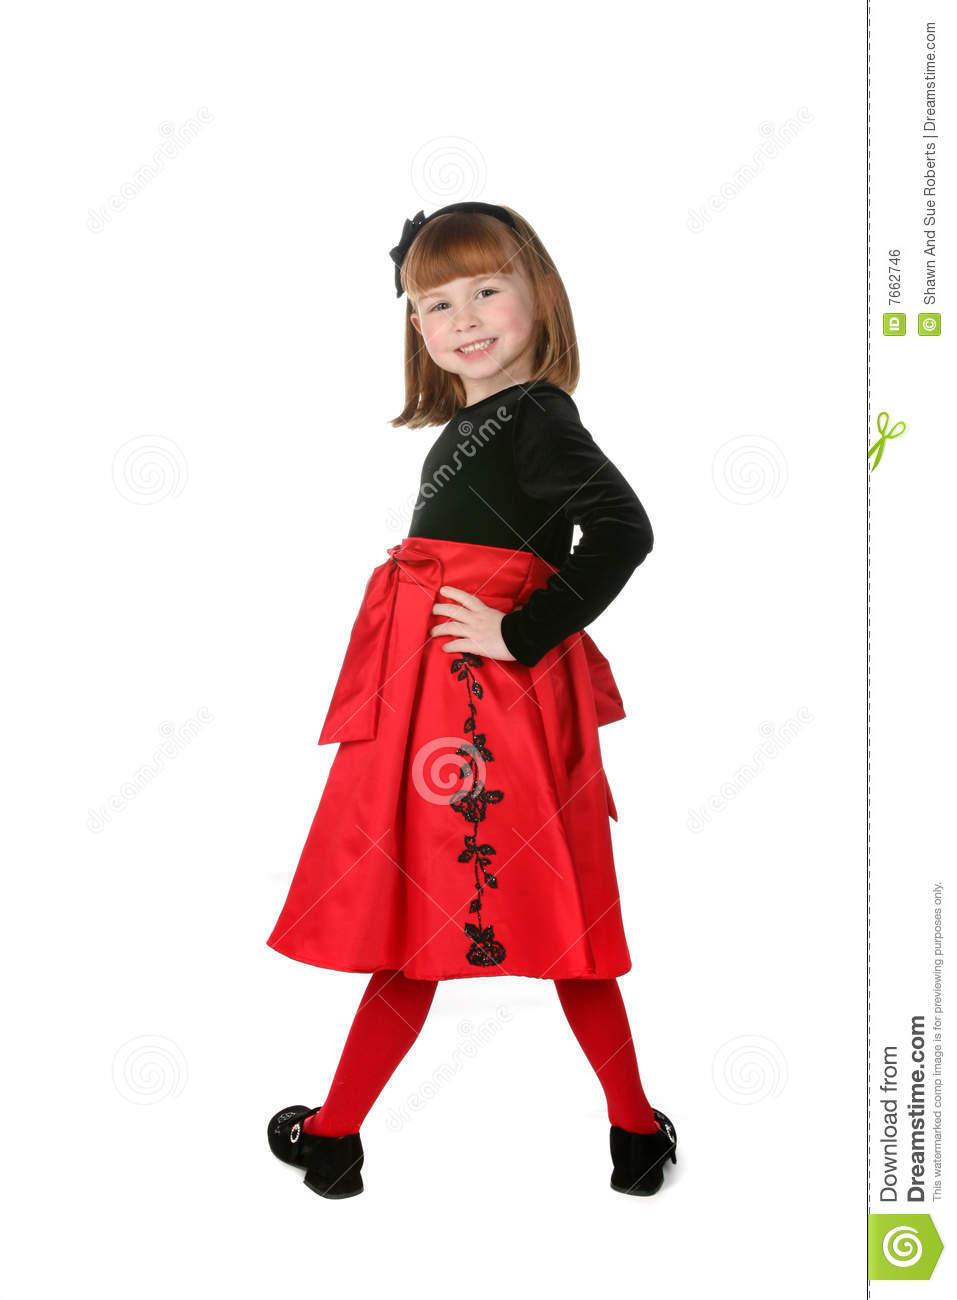 16cfe98e4f9bc Pretty Little Girl Wearing Holiday Dress Stock Photo - Image of ...